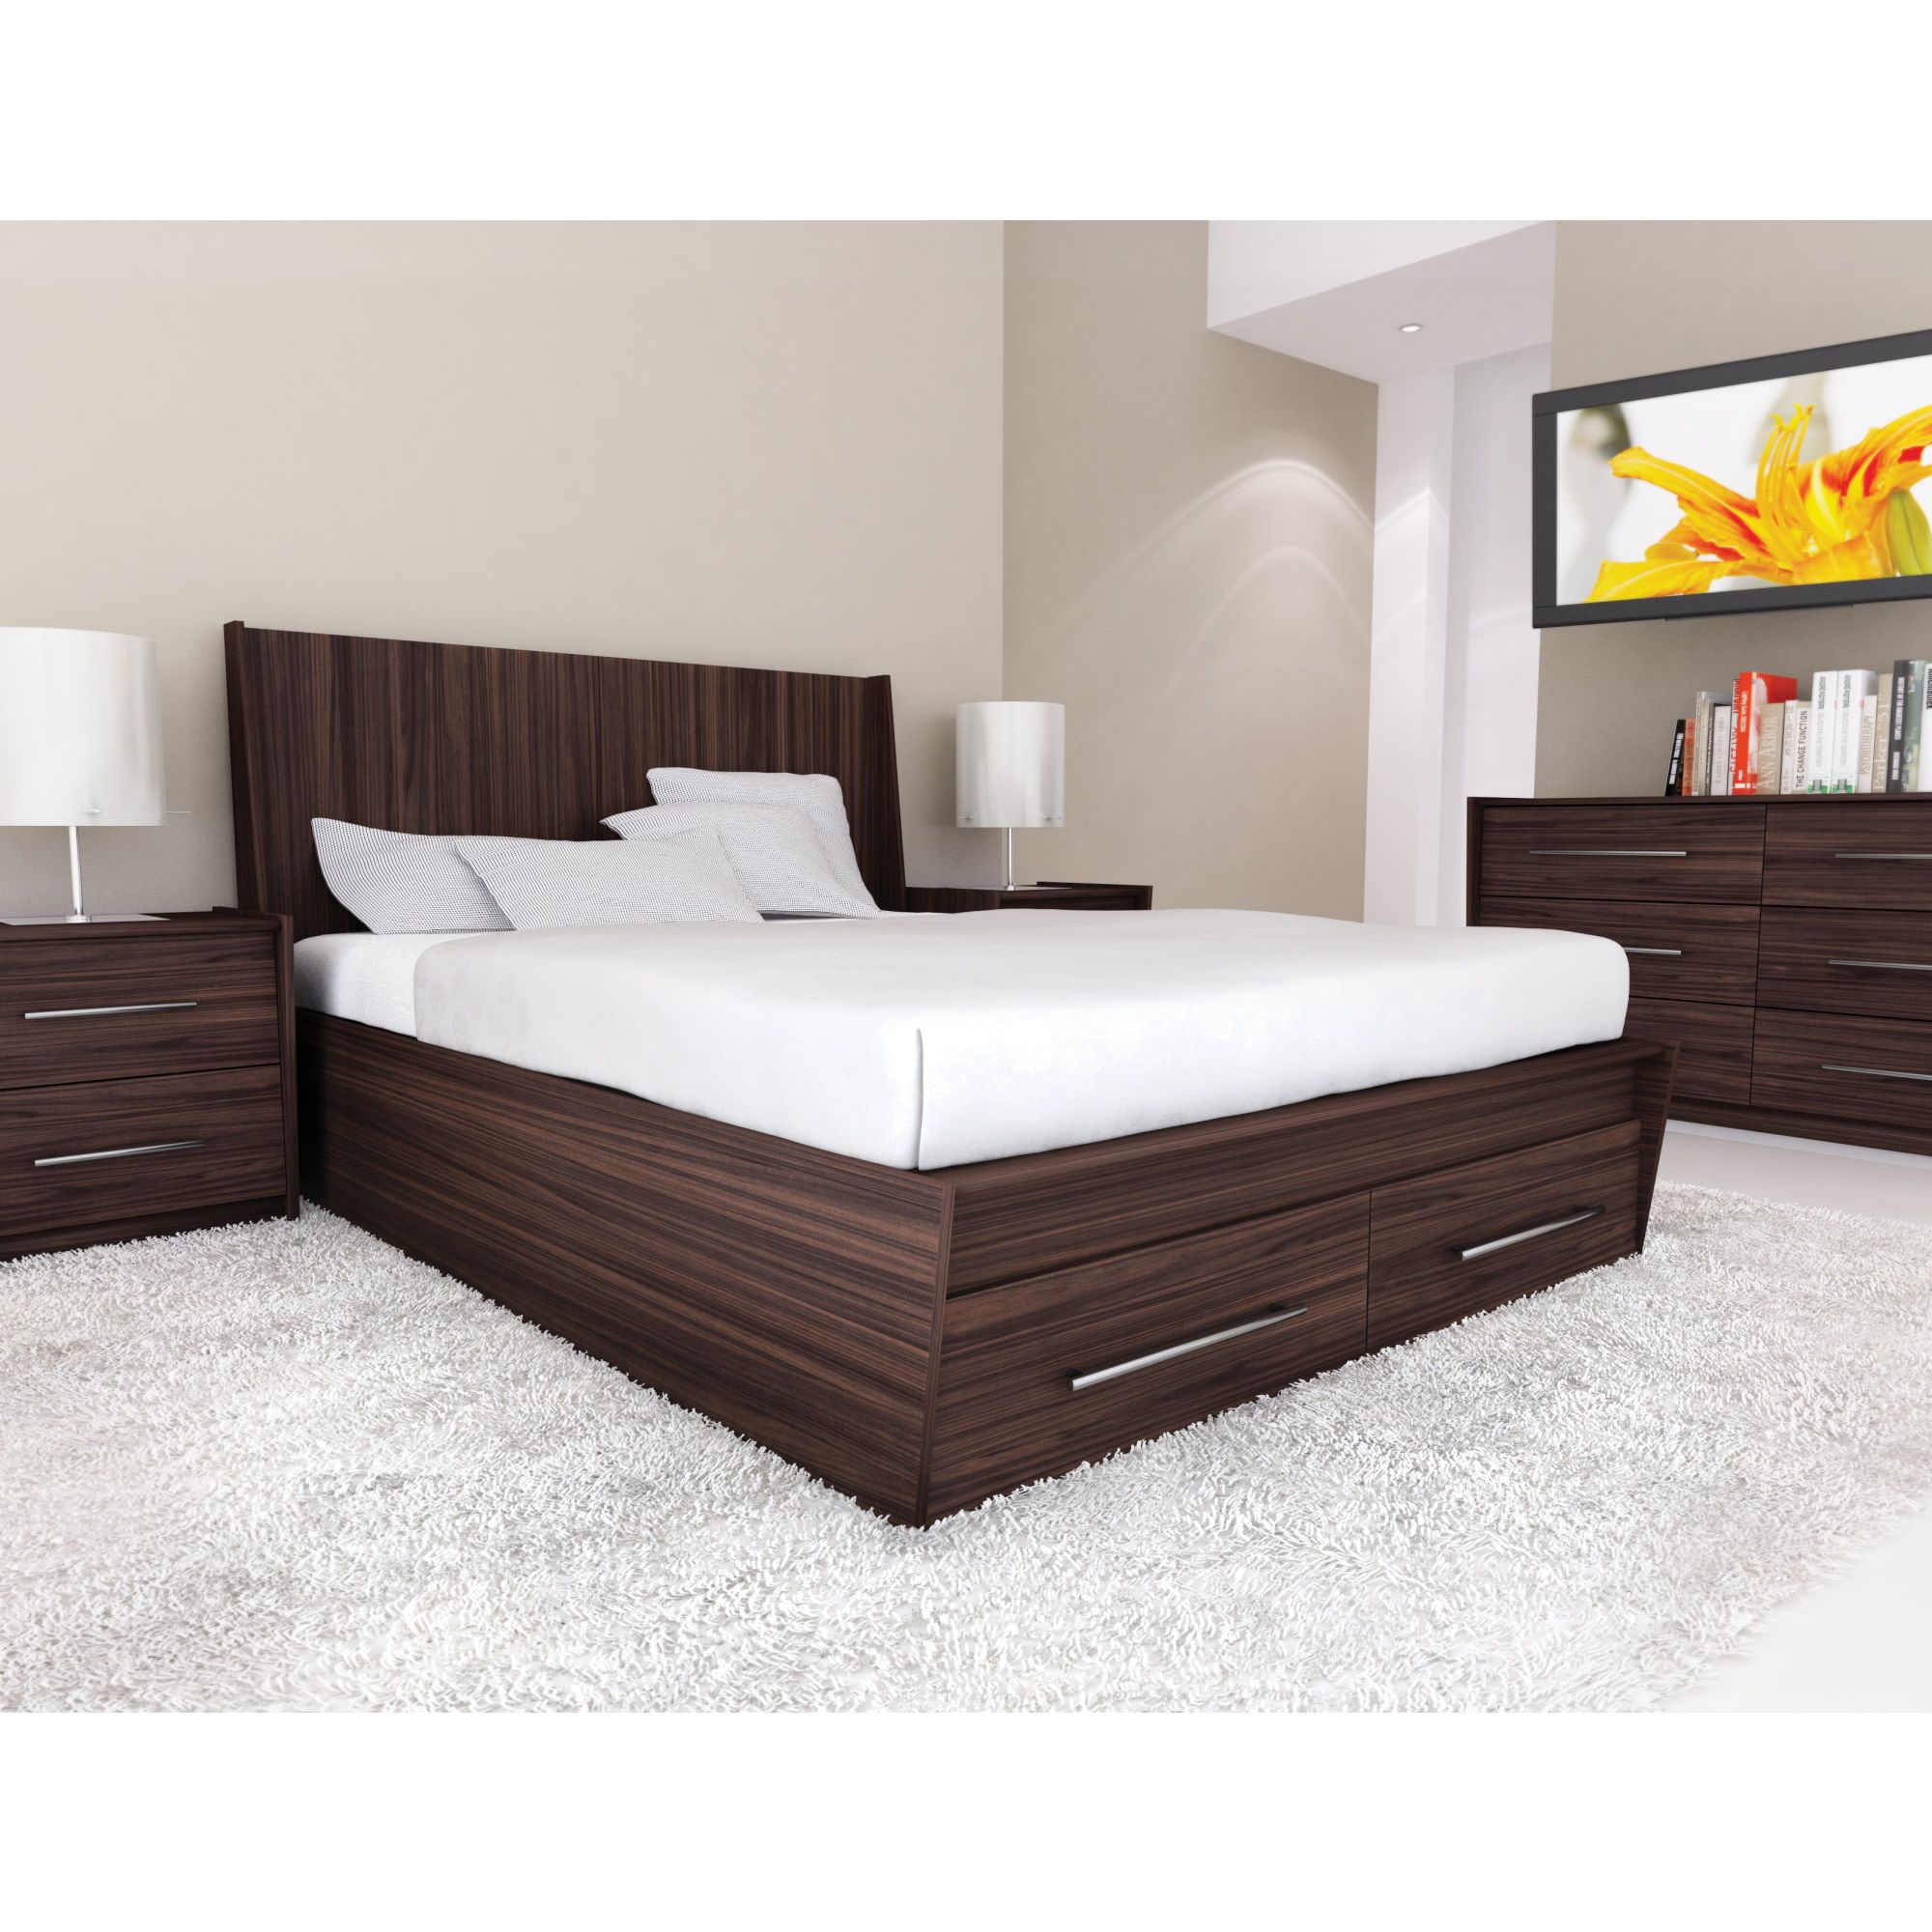 Bed Designs For Your Comfortable Bedroom Interior Design Ideas Wooden Double Bed Designs For